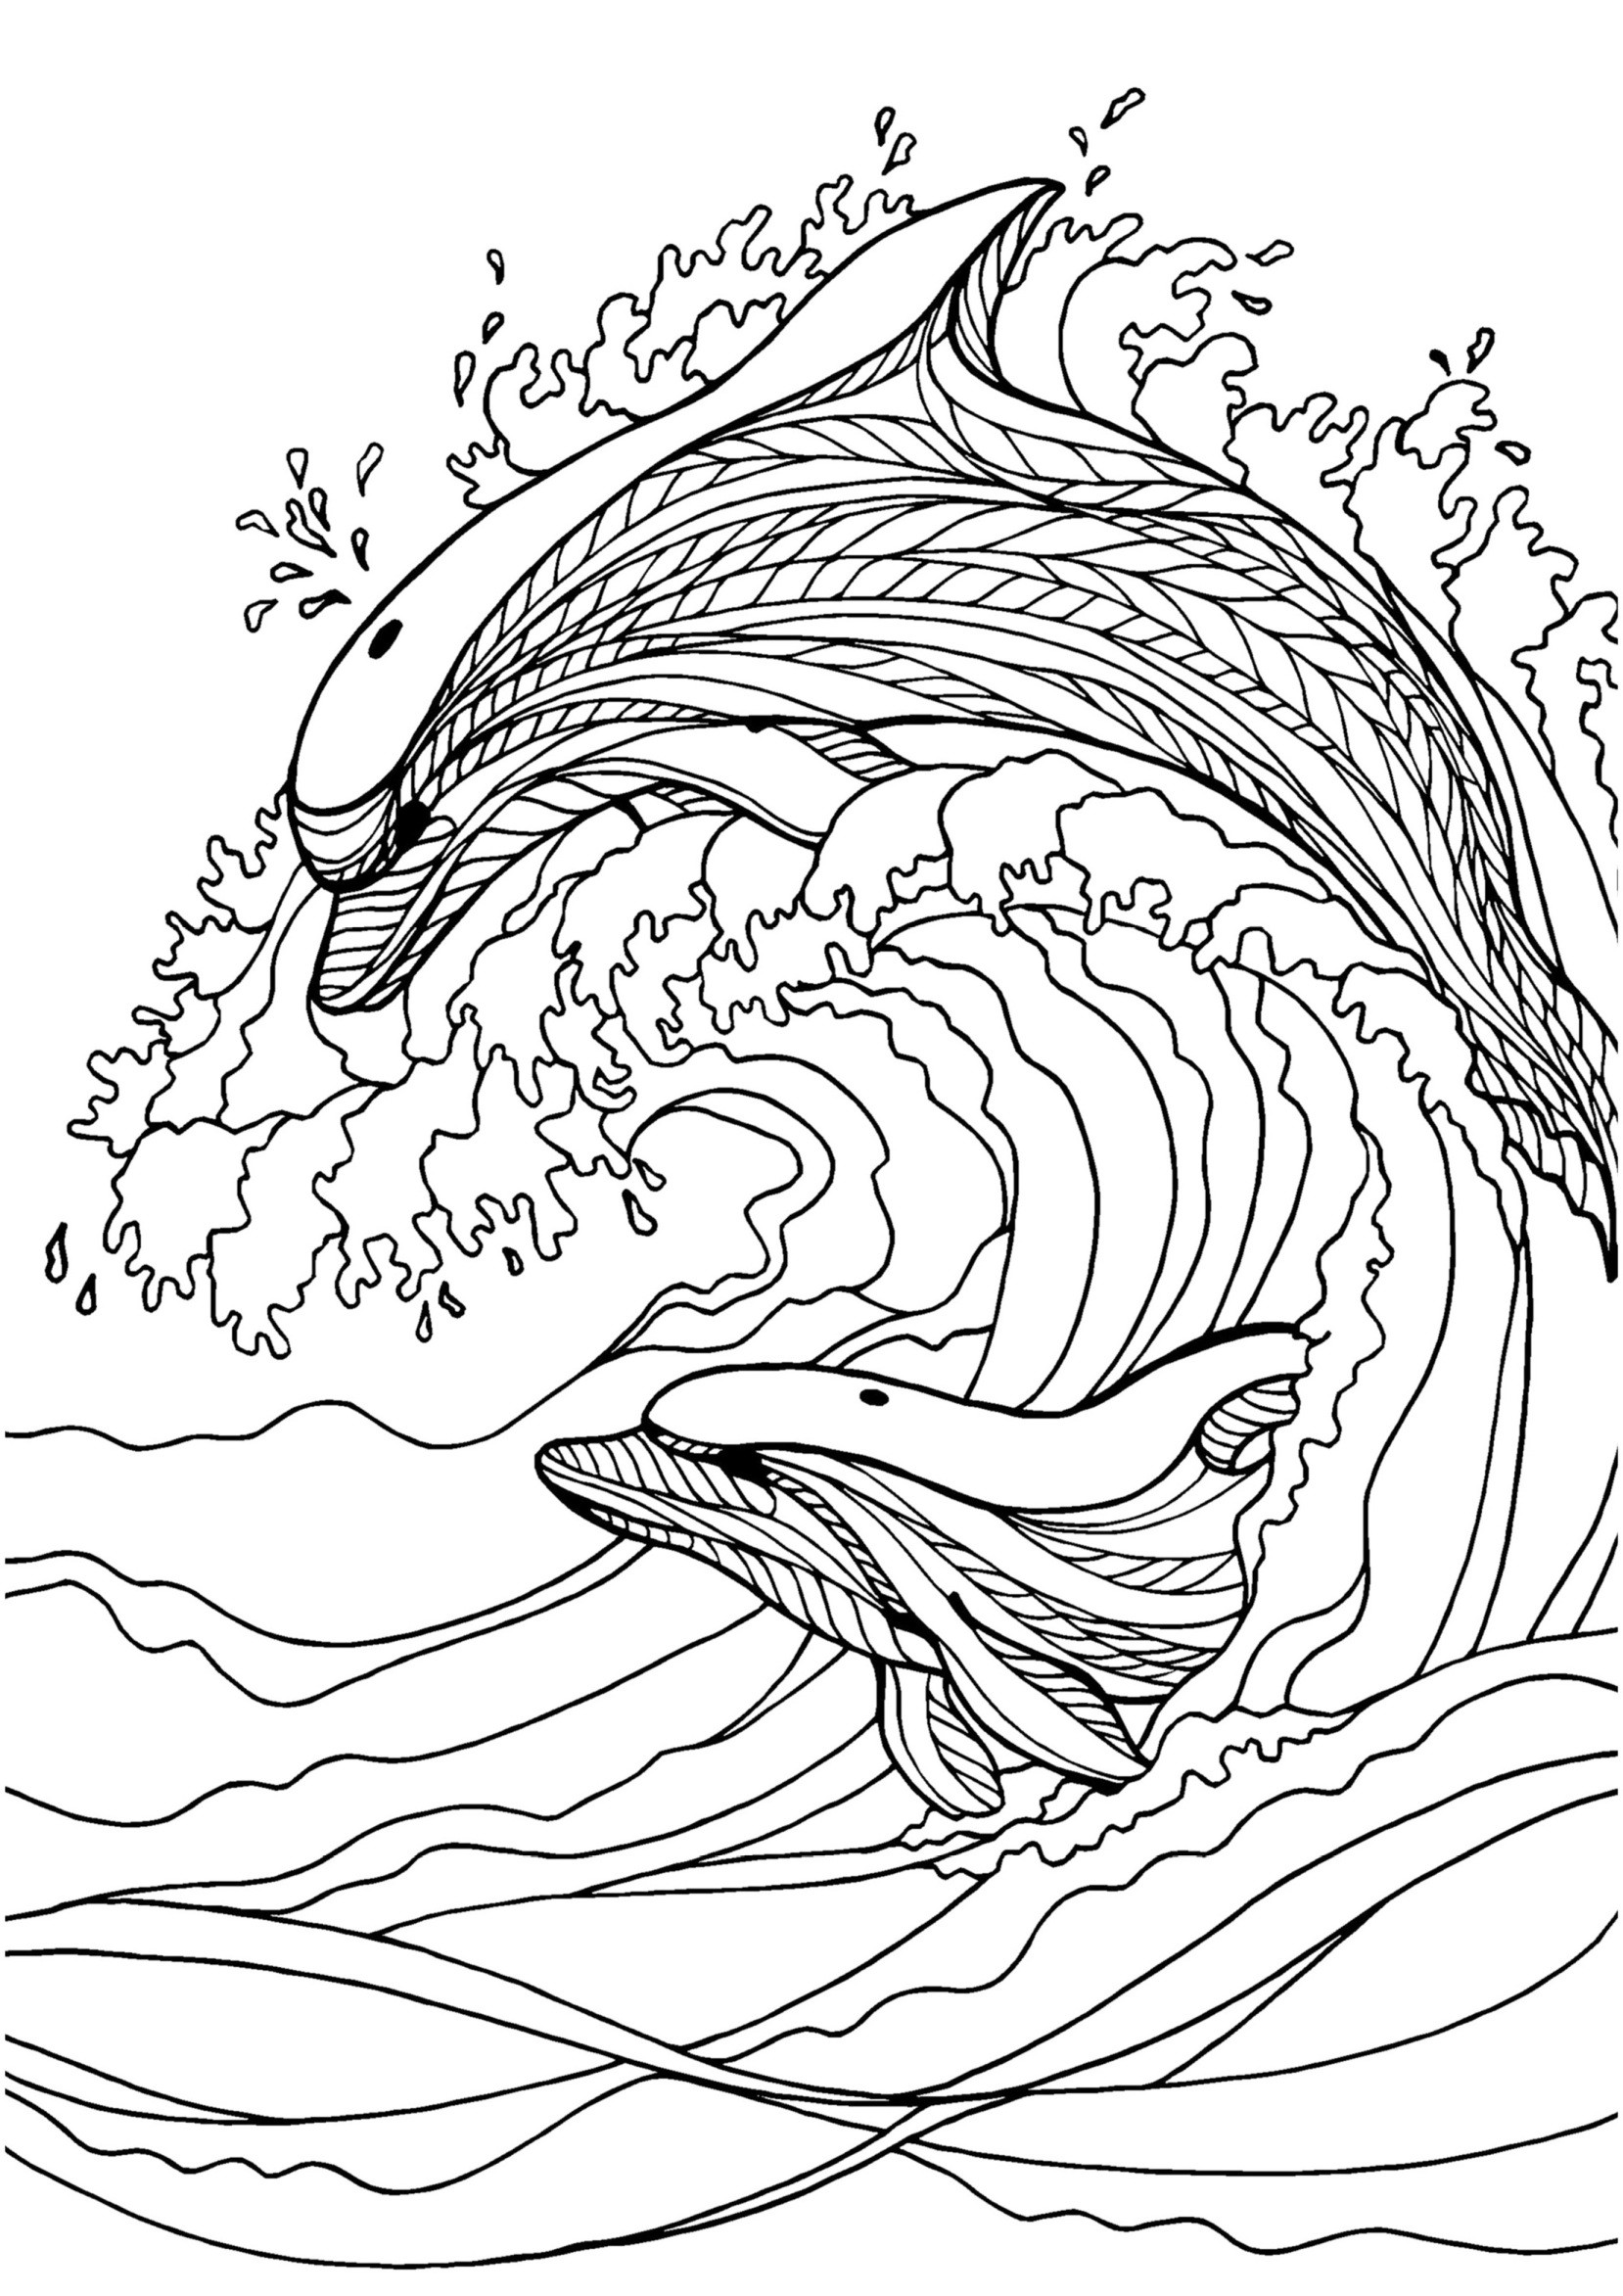 coloring pages dolphin cute dolphin coloring pages bestappsforkidscom dolphin pages coloring